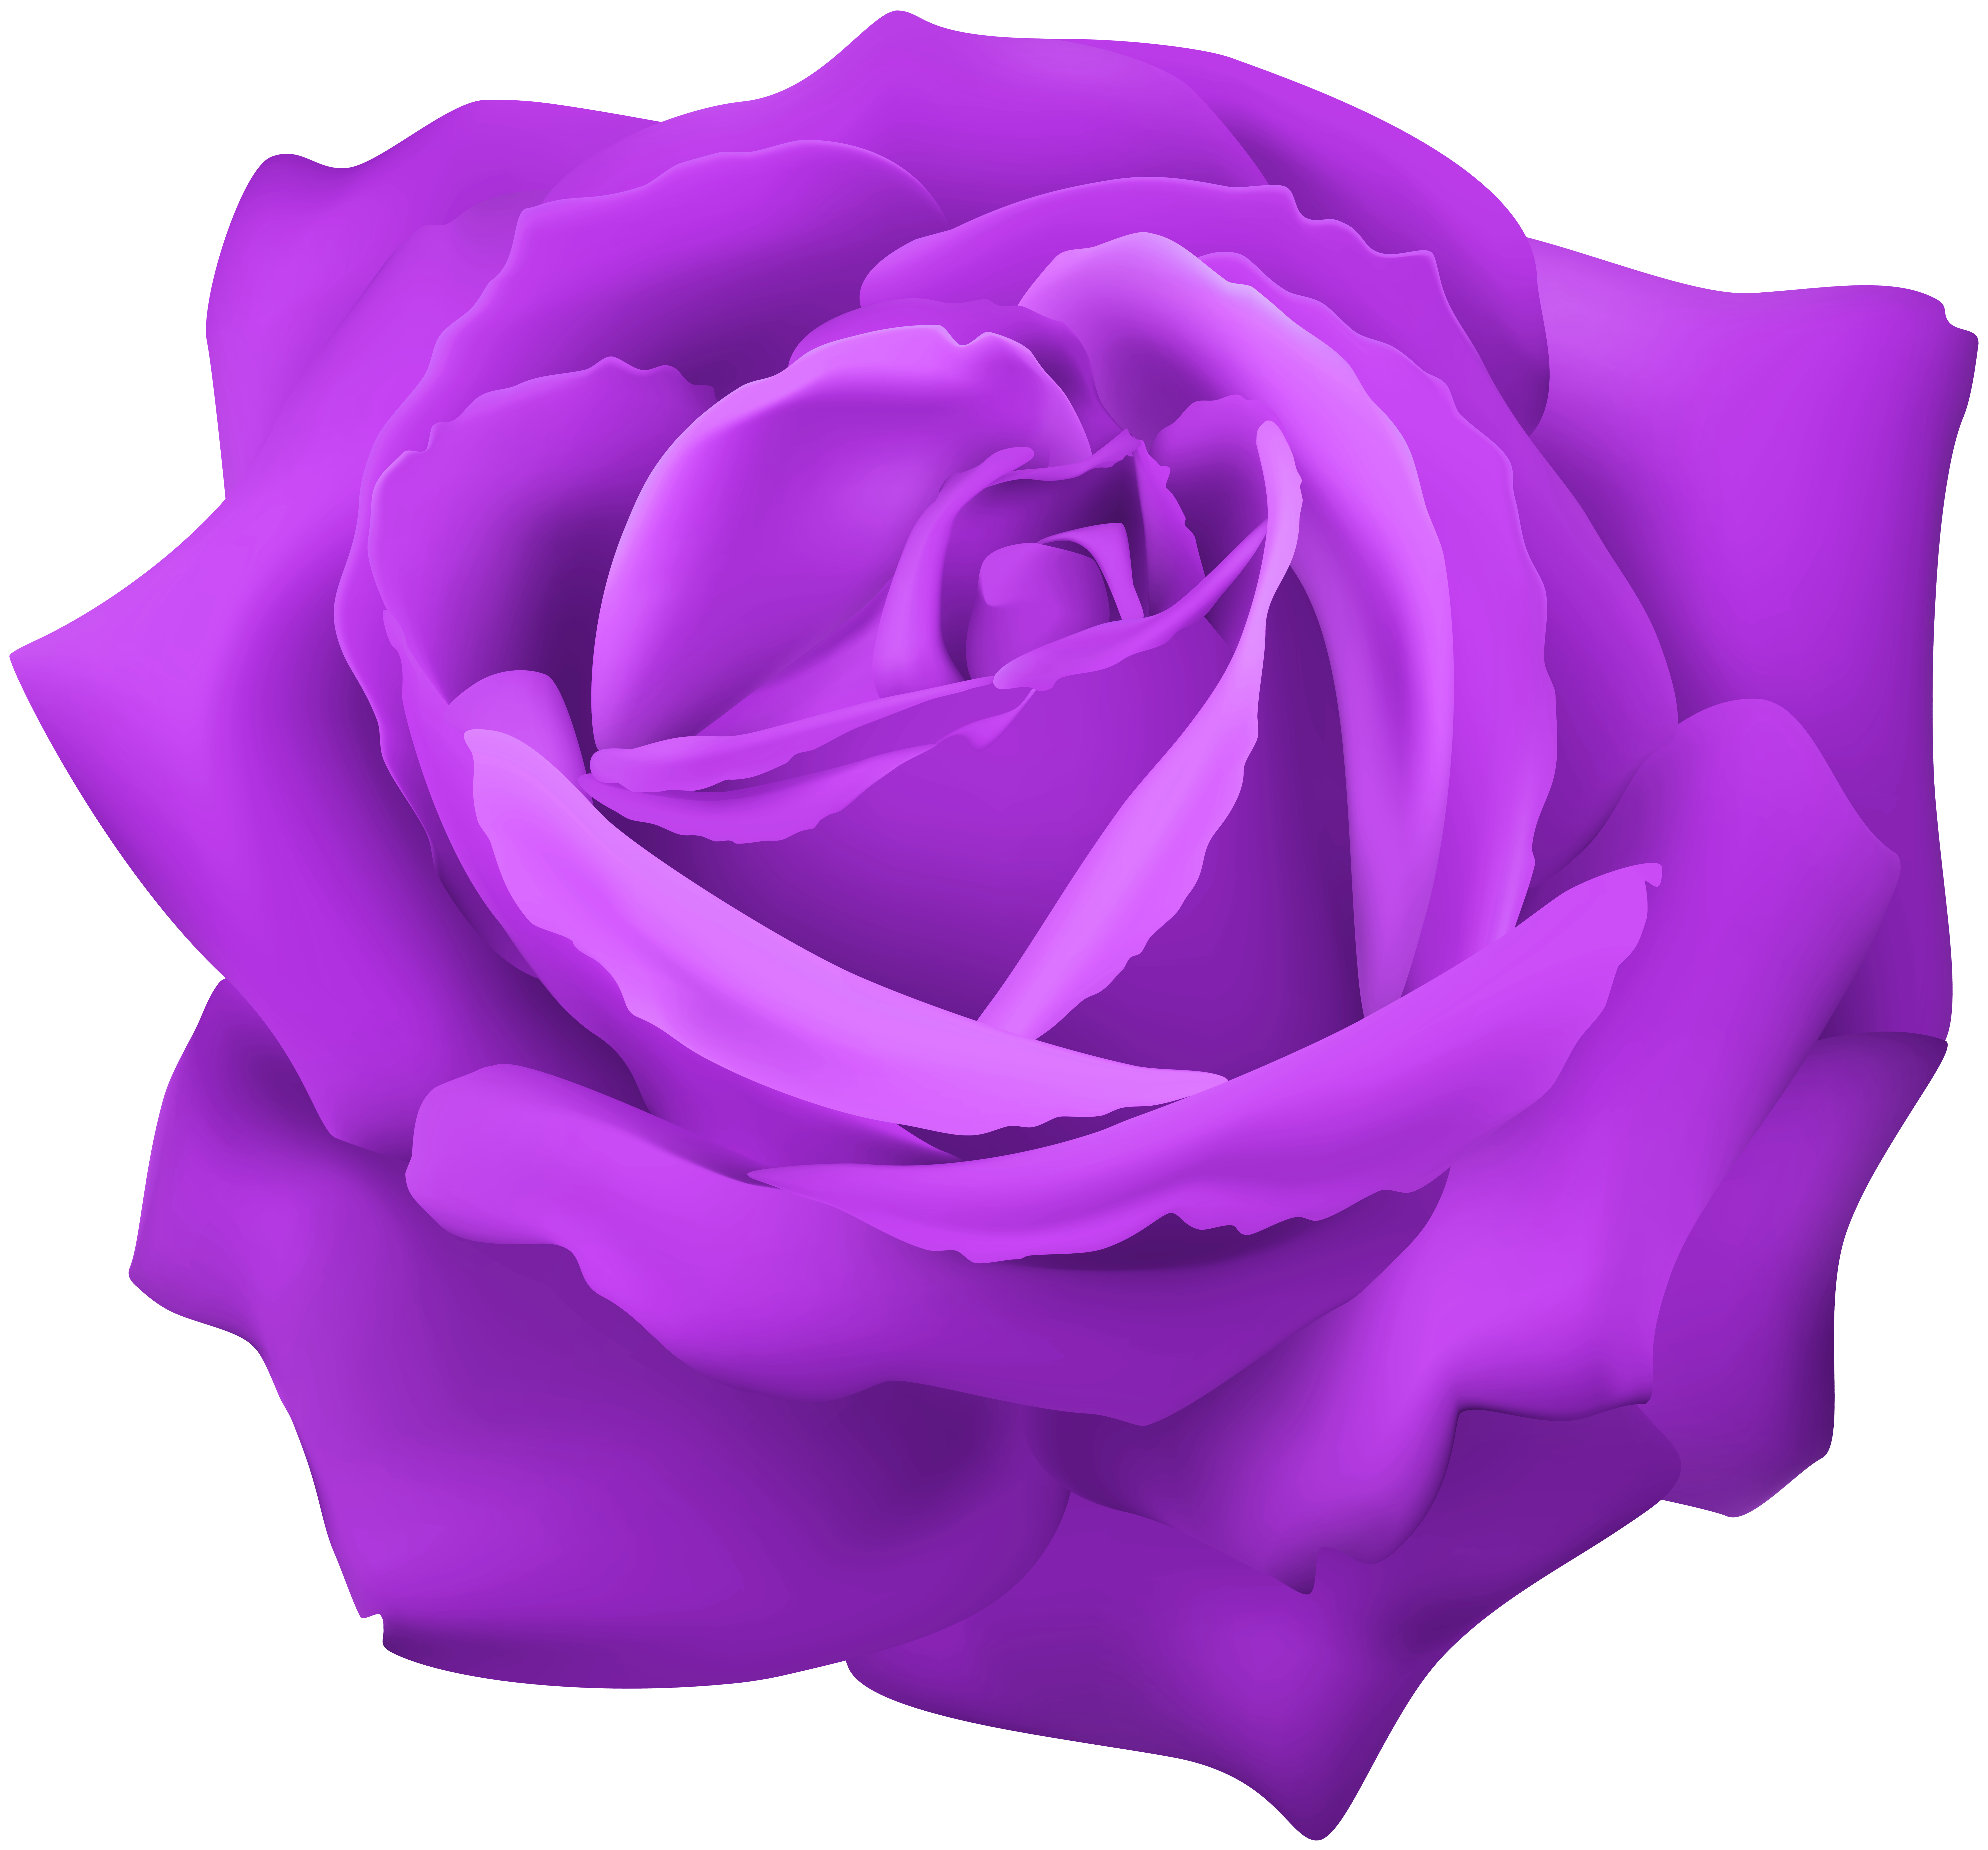 Purple Rose Flower Clip Art Image.